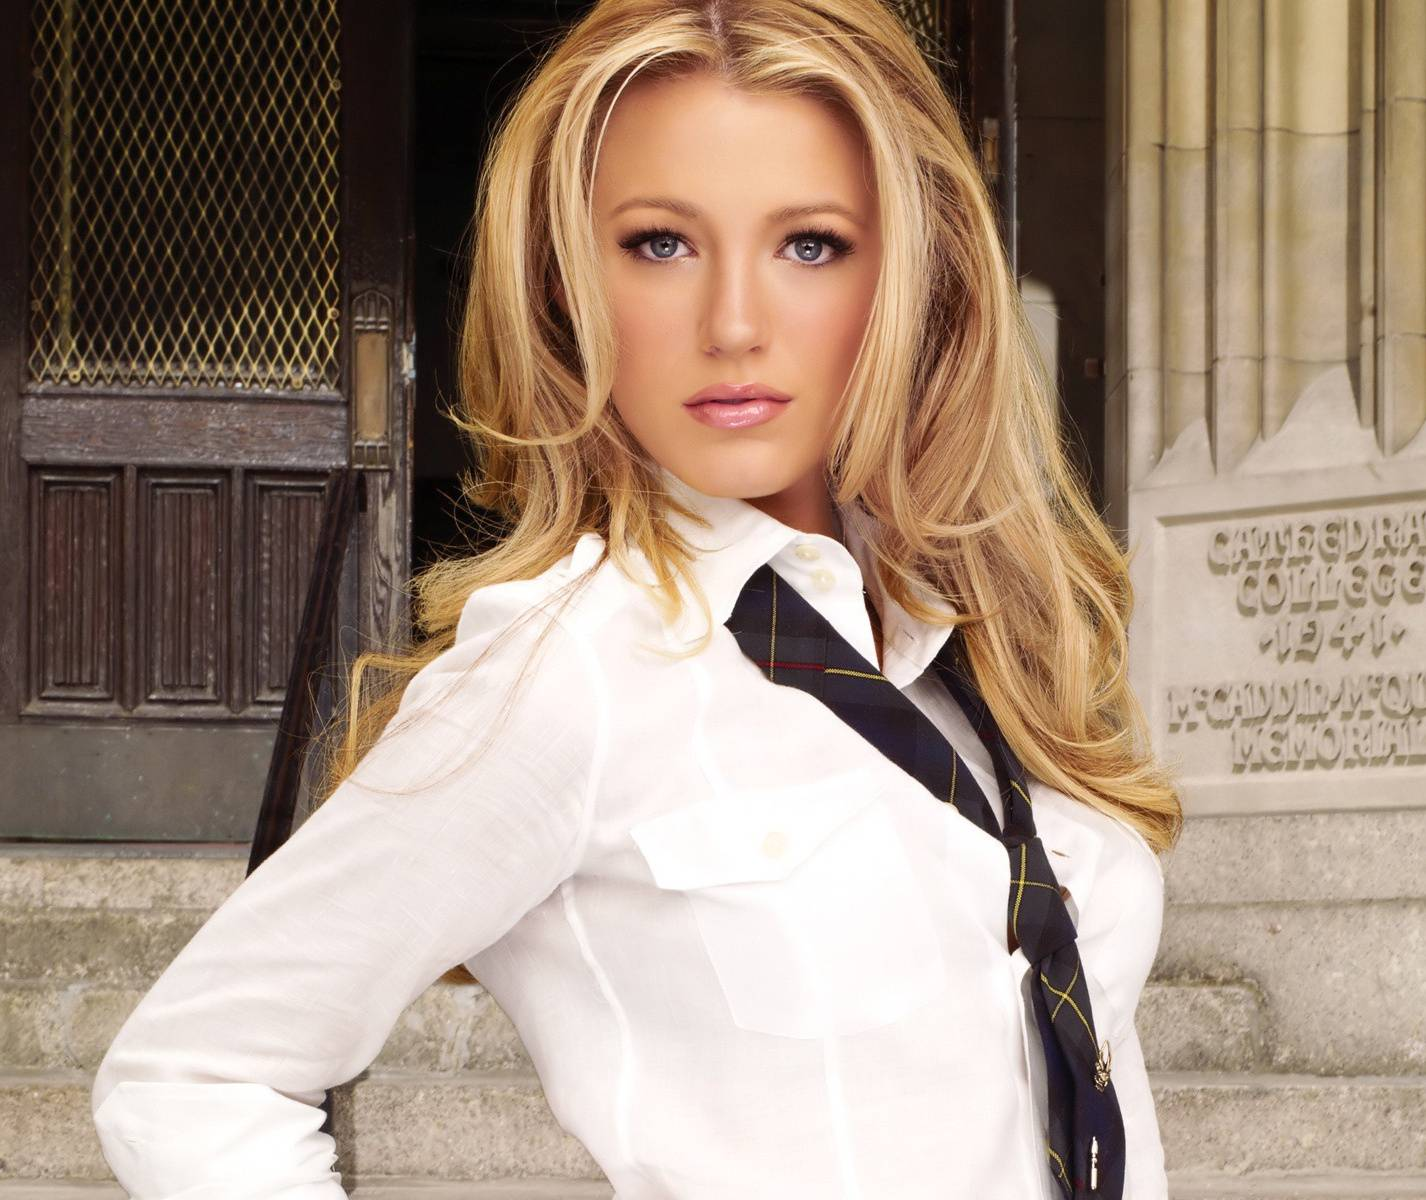 Blake Lively Wallpaper By Tyashwant 51 Free On Zedge